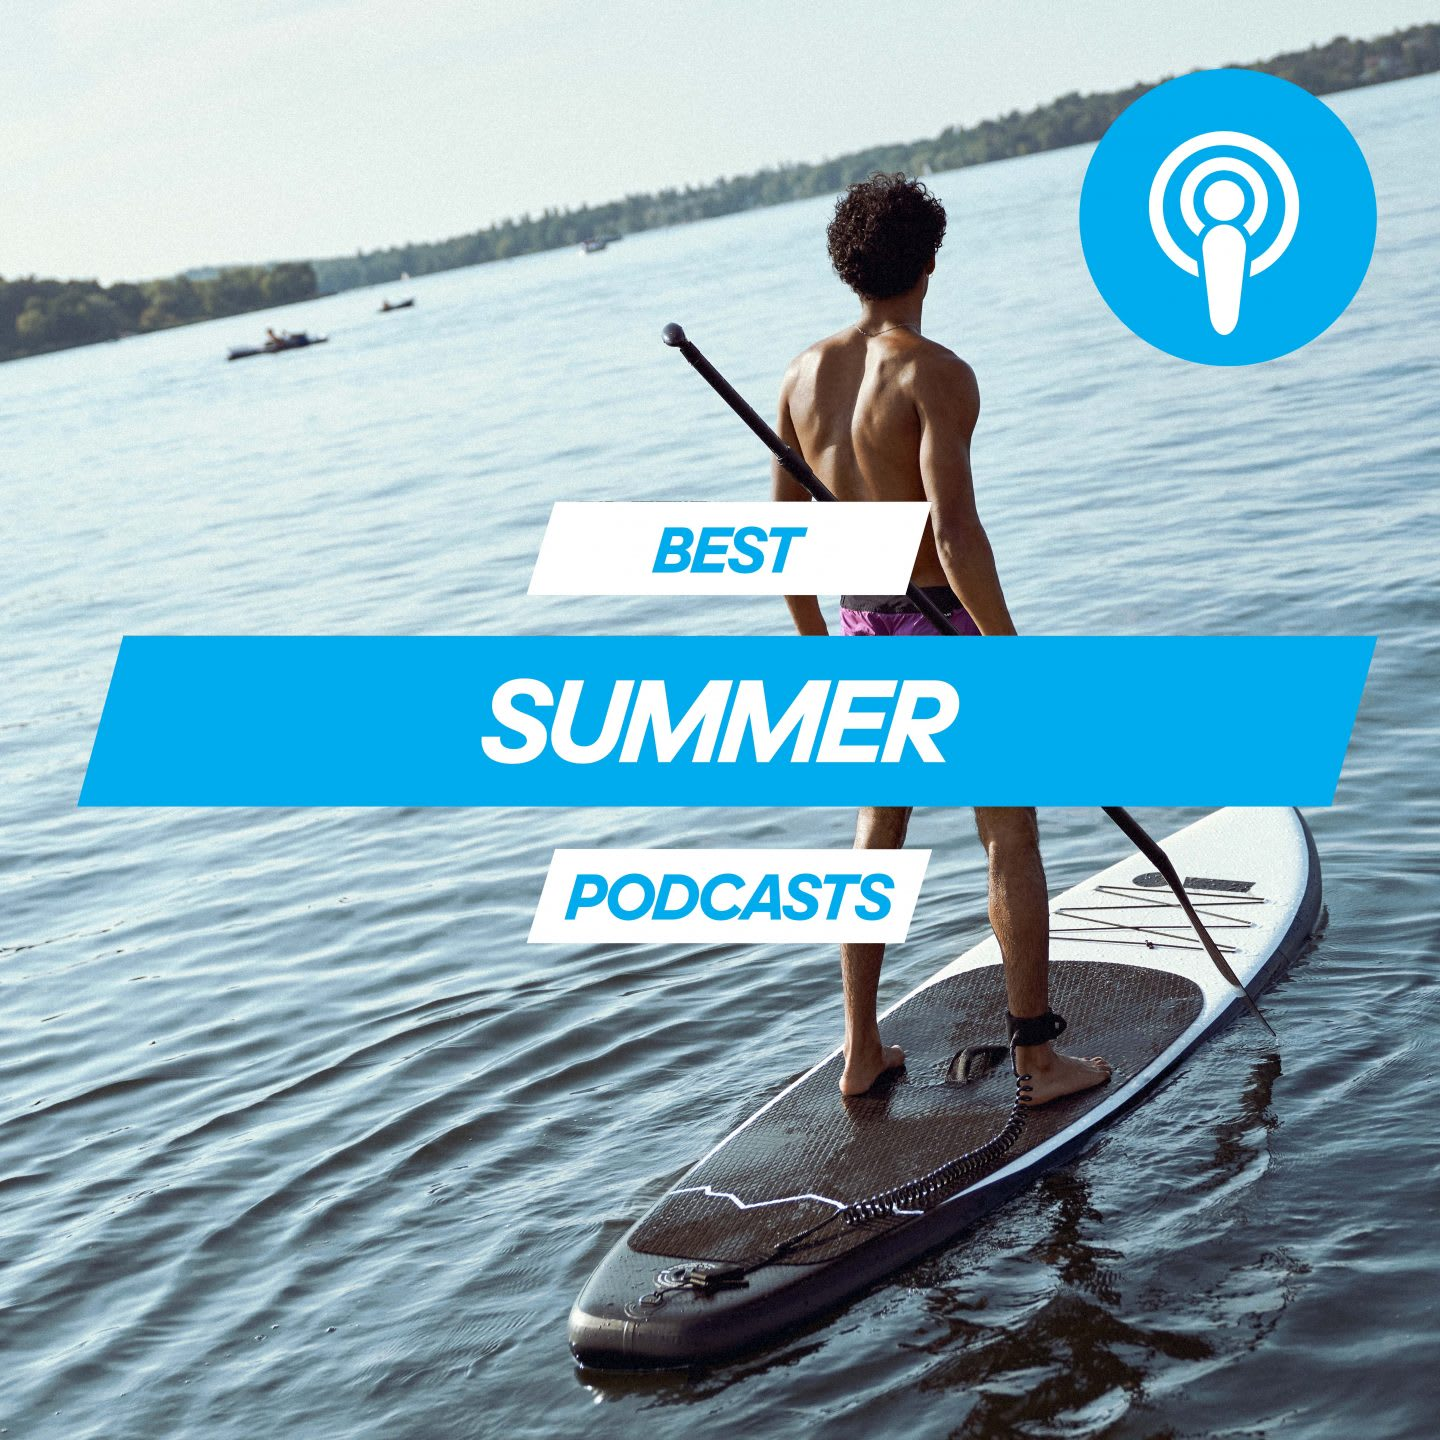 GamePlan A recommendations for best podcasts for summer holidays, environment, listening, growth mindset, podcasts, corporate athlete